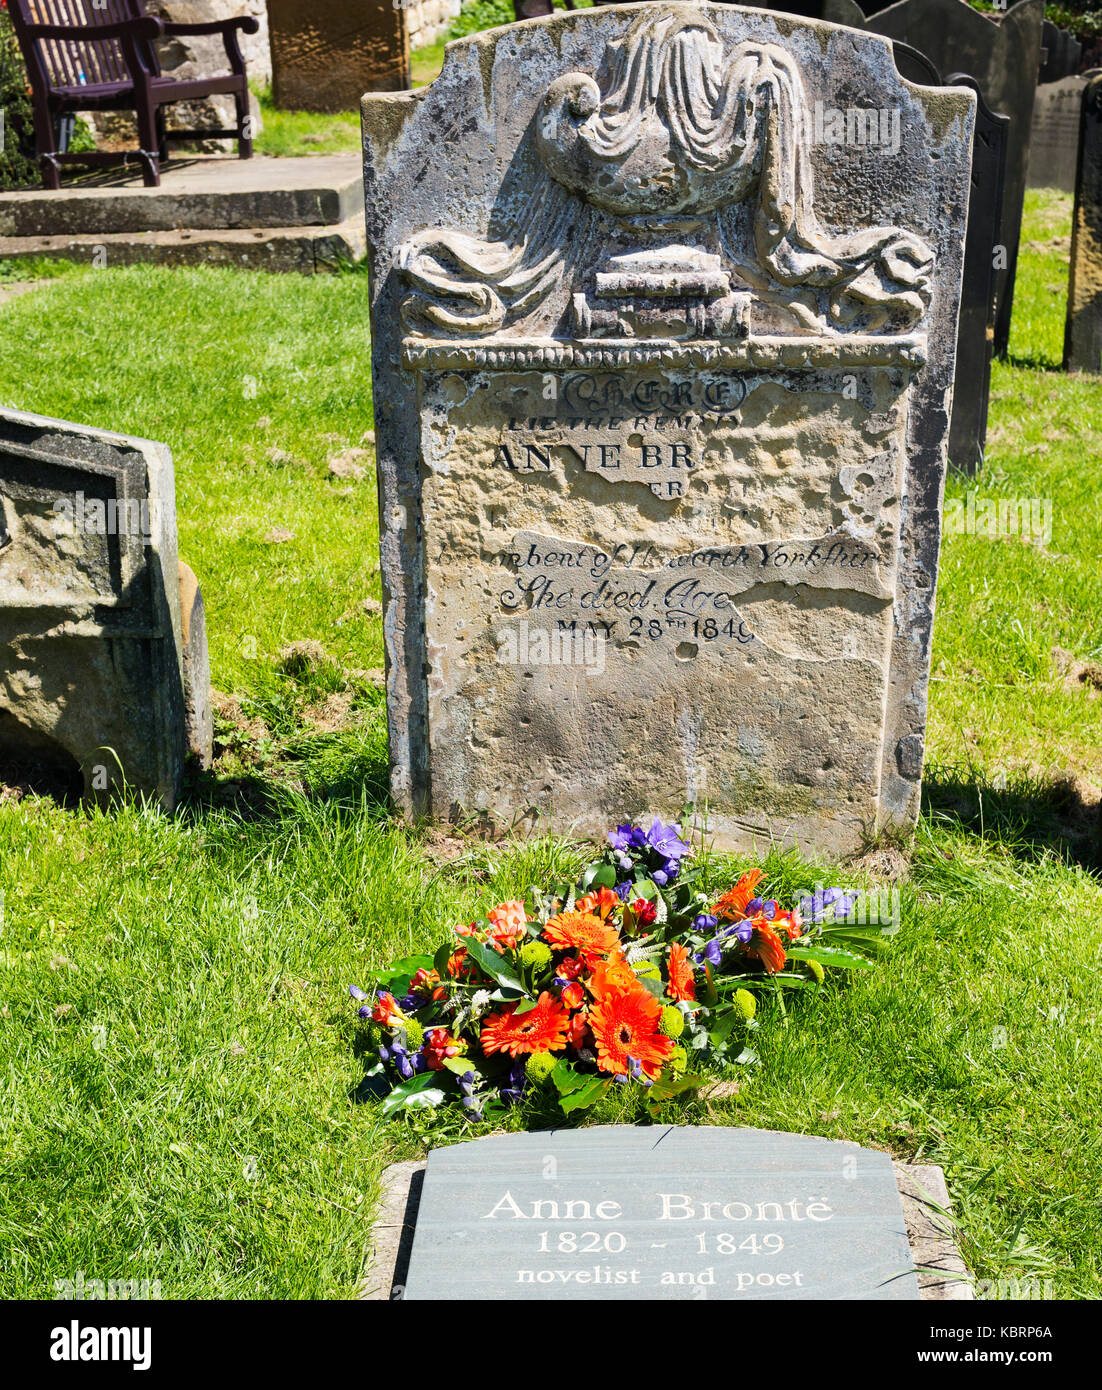 Anne Bronte's final resting place - Stock Image